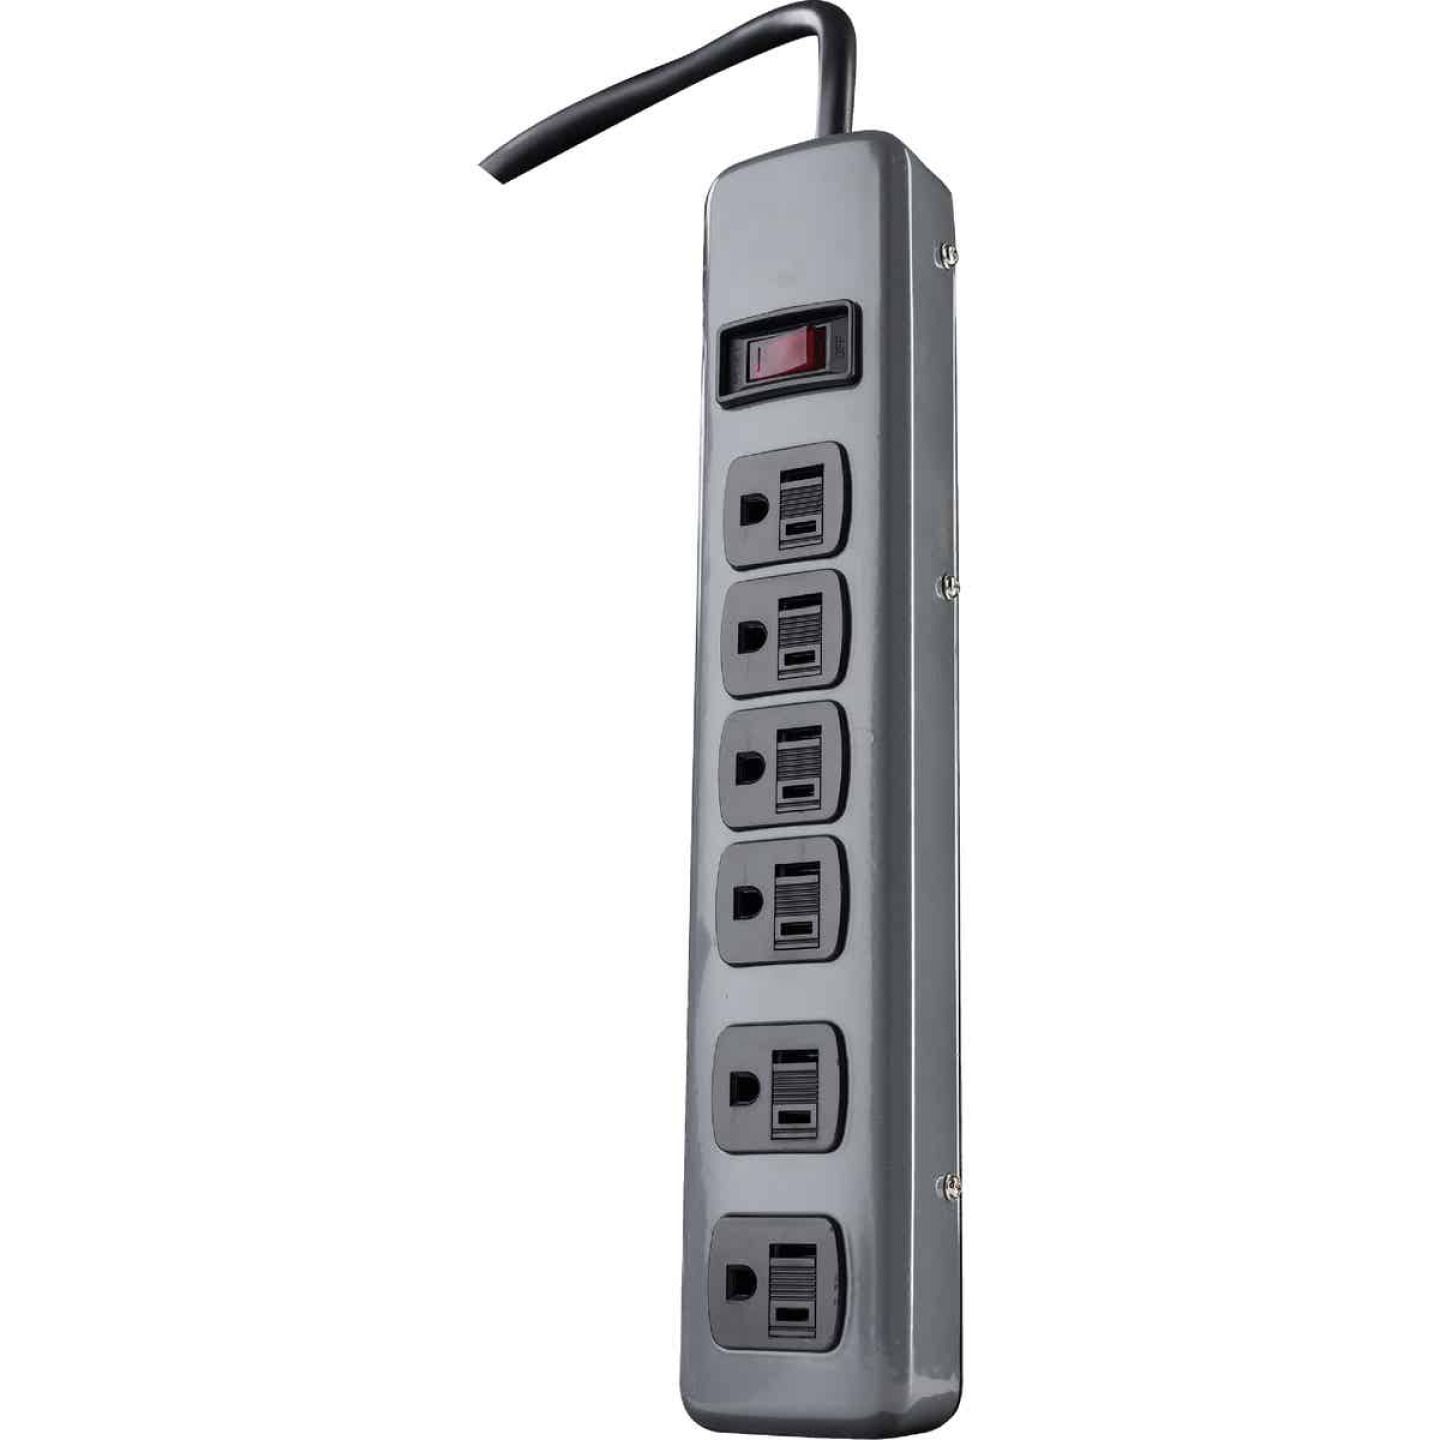 Woods 6-Outlet Gray Power Strip with 5 Ft. Cord Image 1